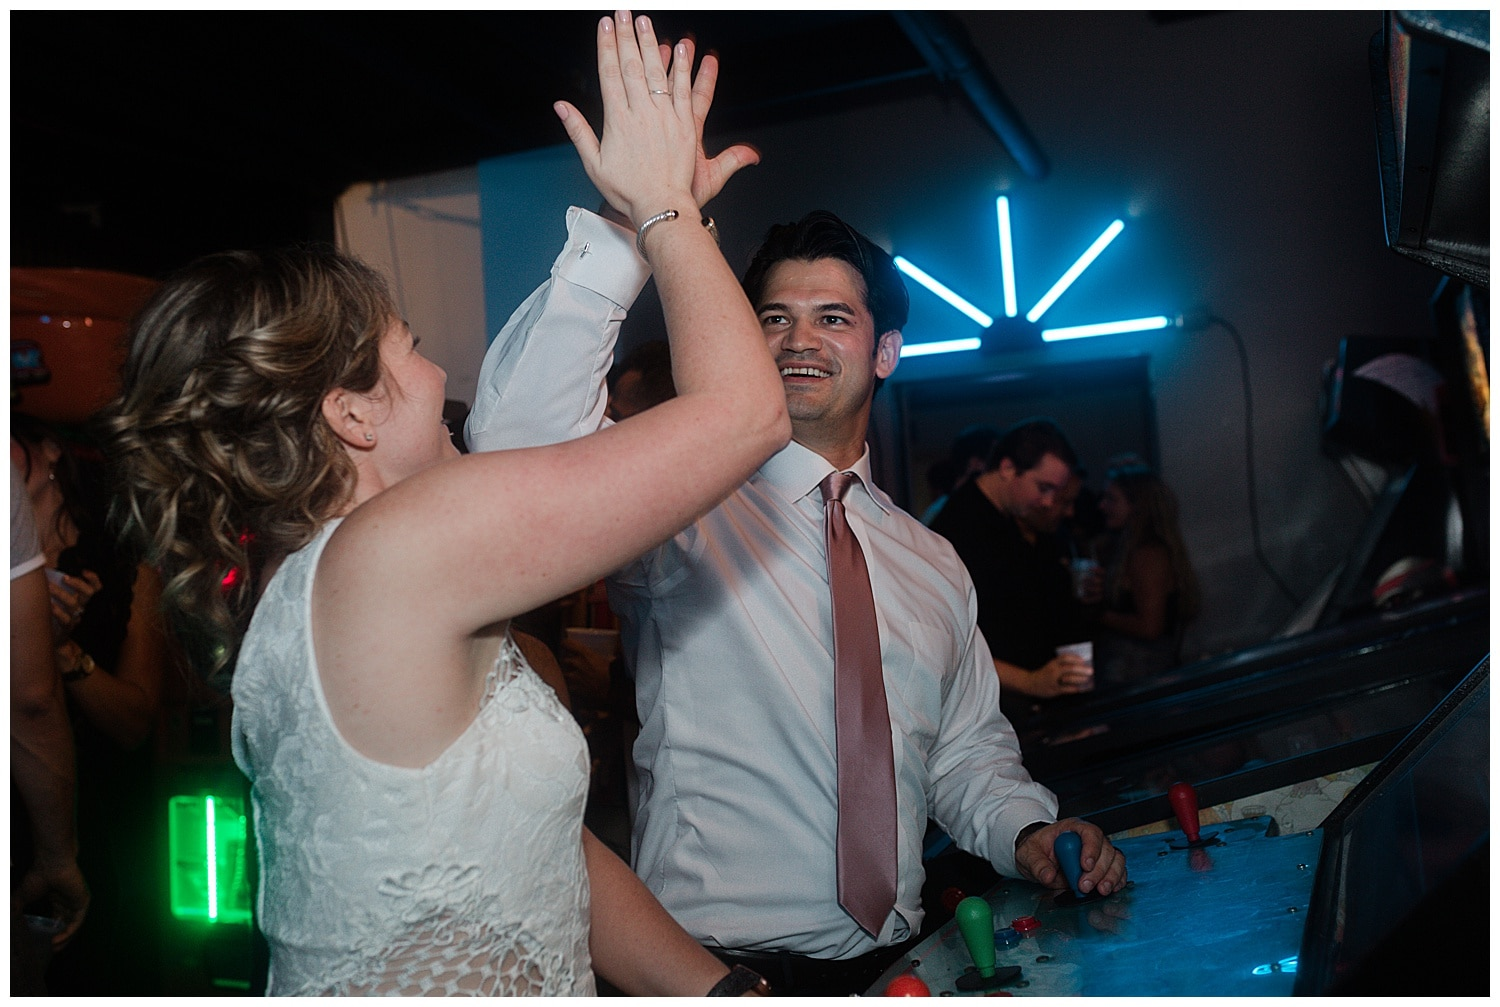 bride and groom arcade playing at an arcade night club in New Orleans by Swish and Click Photography